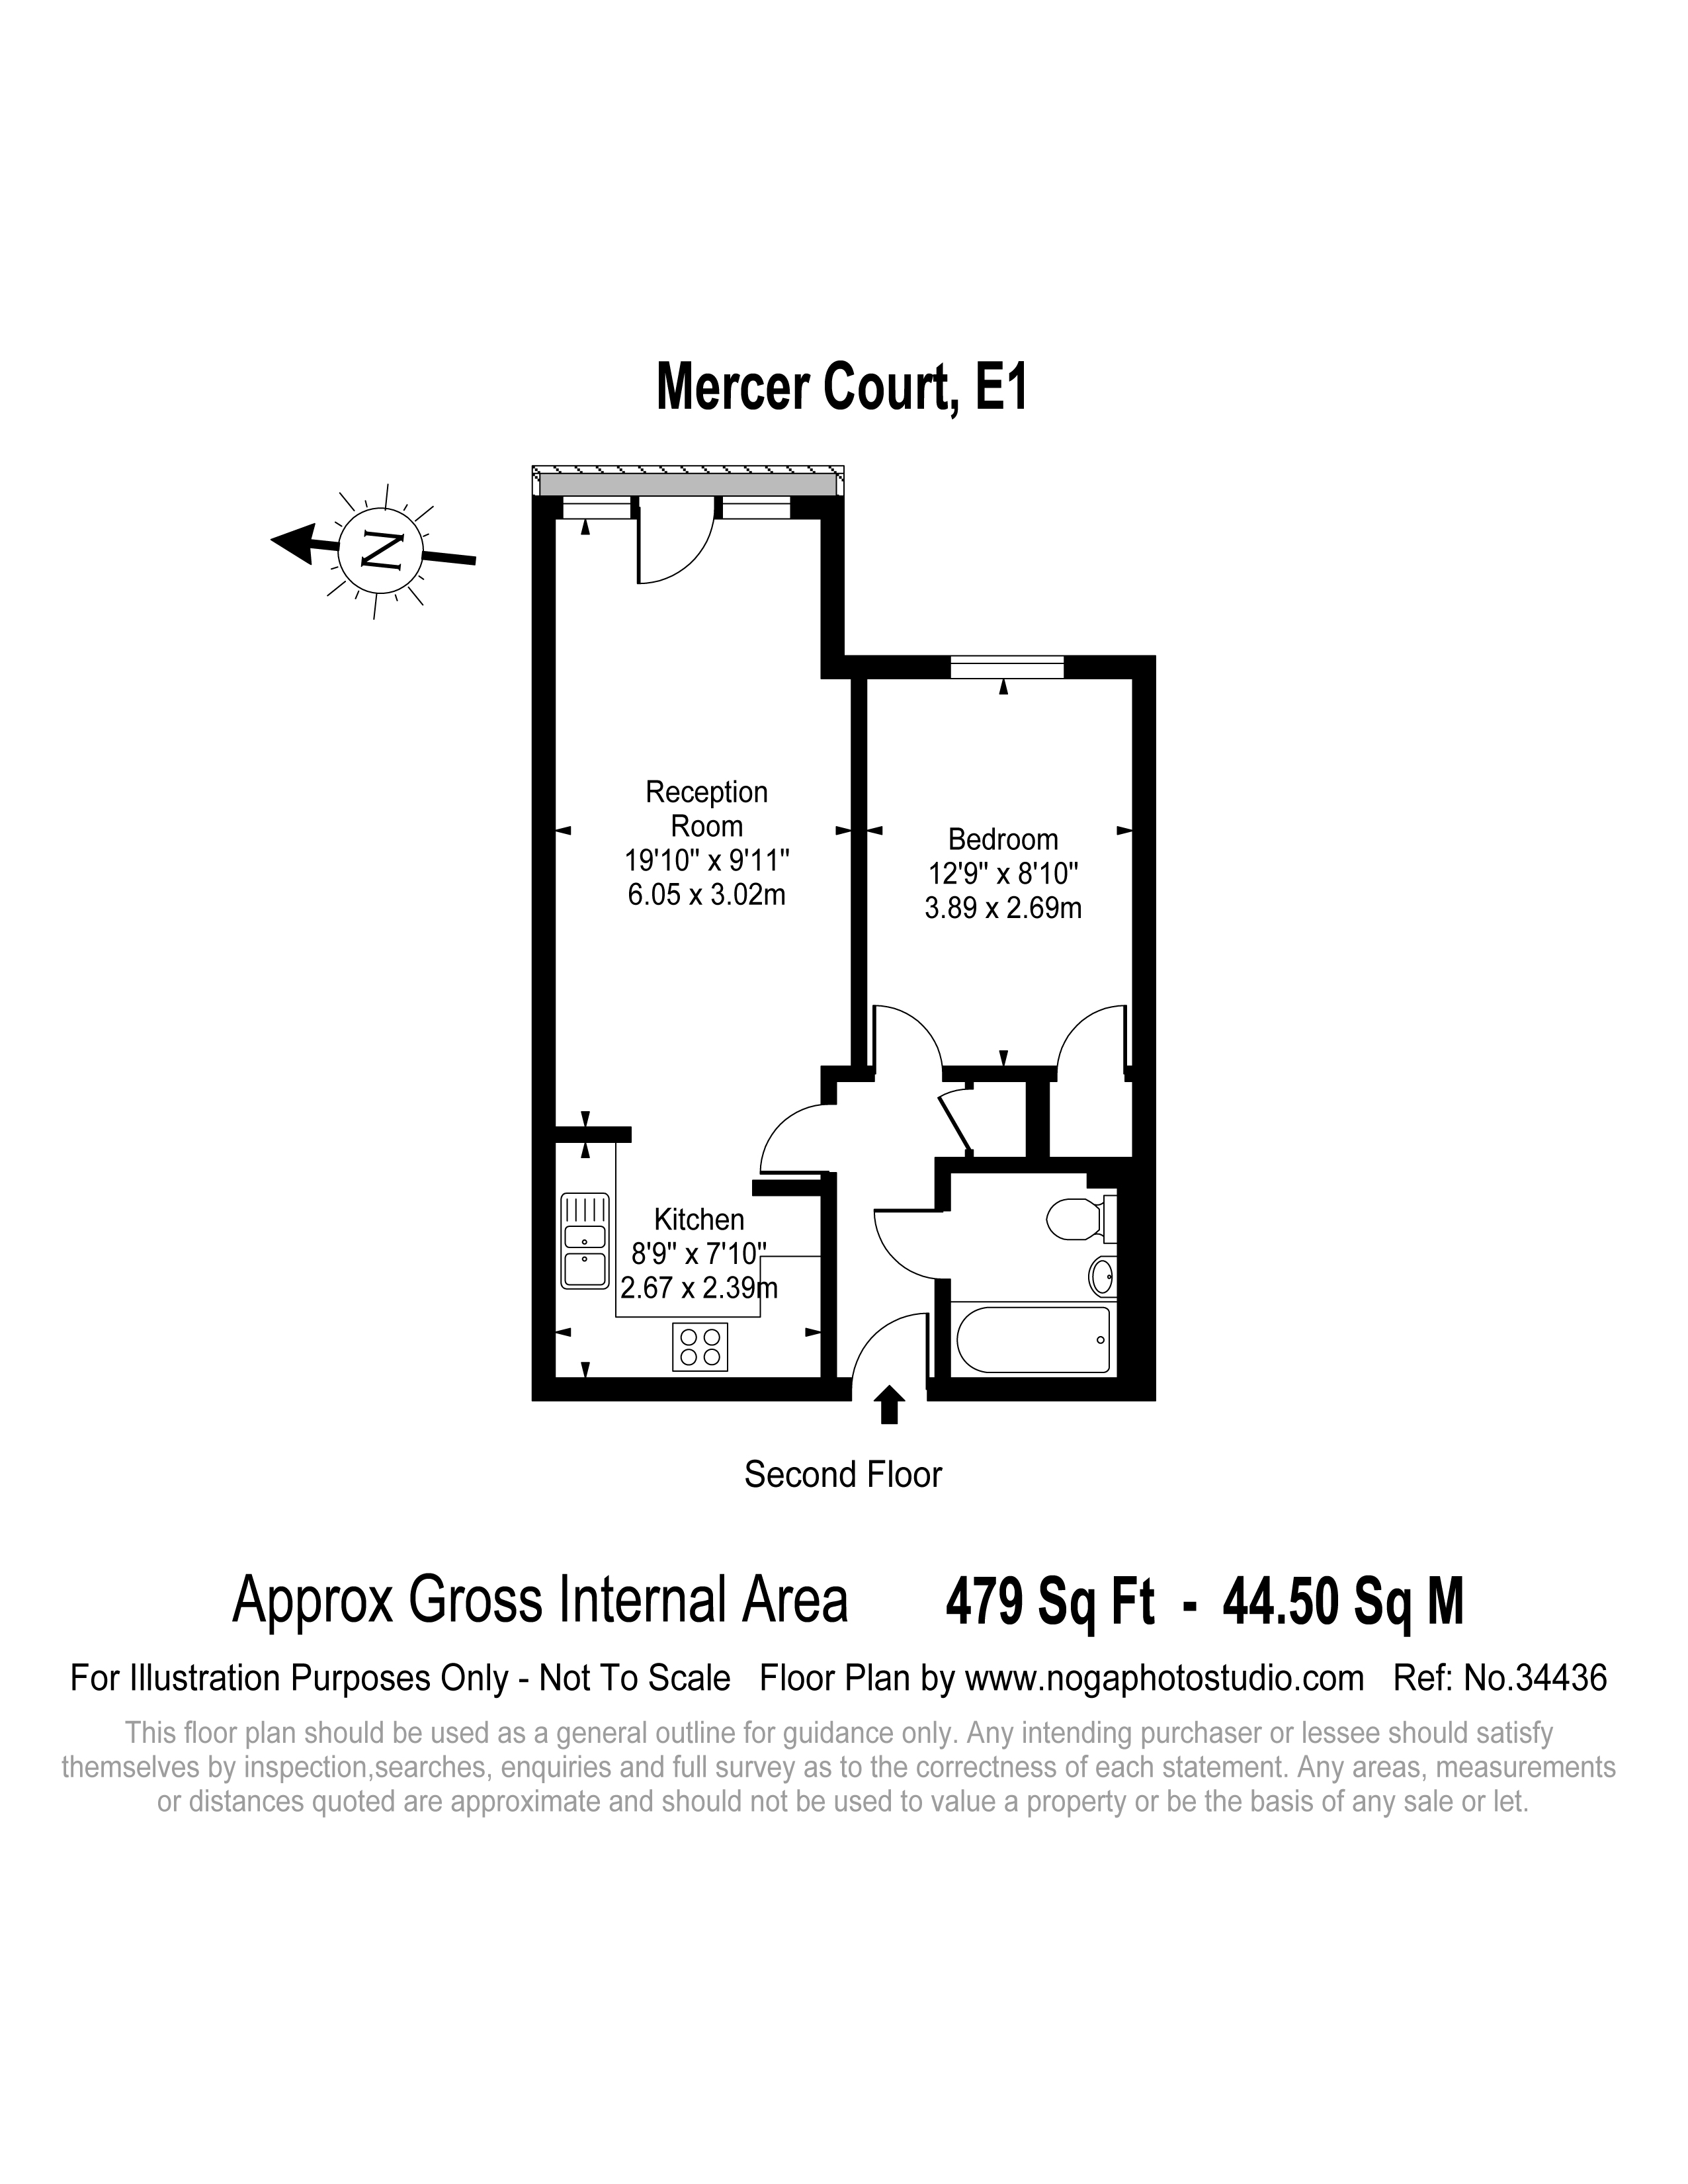 100 50 Sq M To Sq Ft This 309 Square Foot Micro